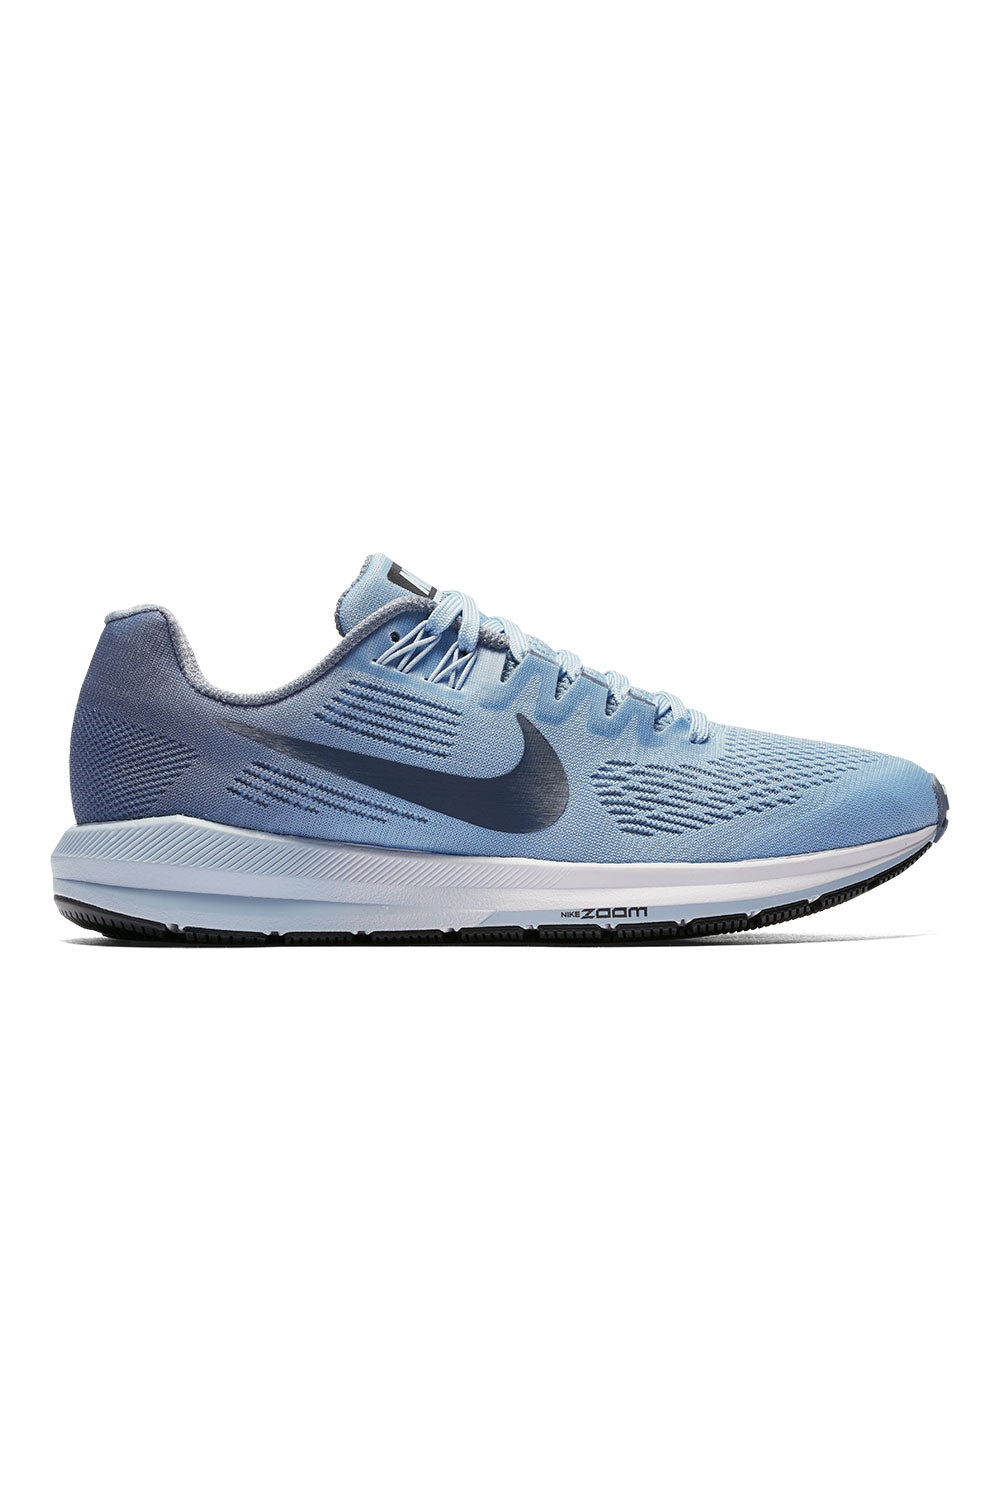 new concept 85304 cfdc3 Women s Air Zoom Structure 21 by Nike at Gazelle Sports